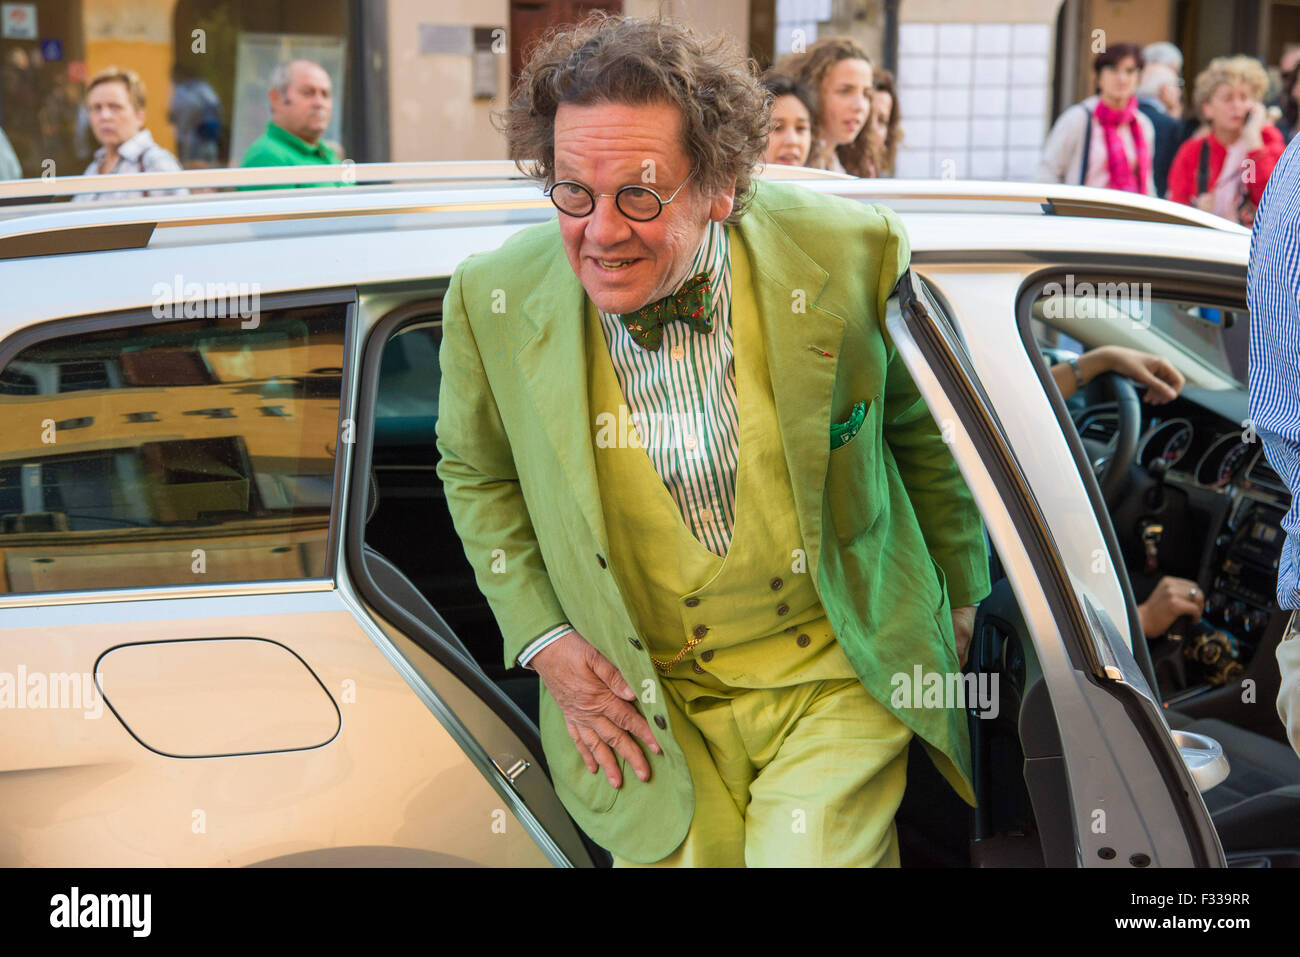 The famous art critic Philippe Daverio at  Art-On Cascina Festival 2015 (Pisa Italy) - Stock Image